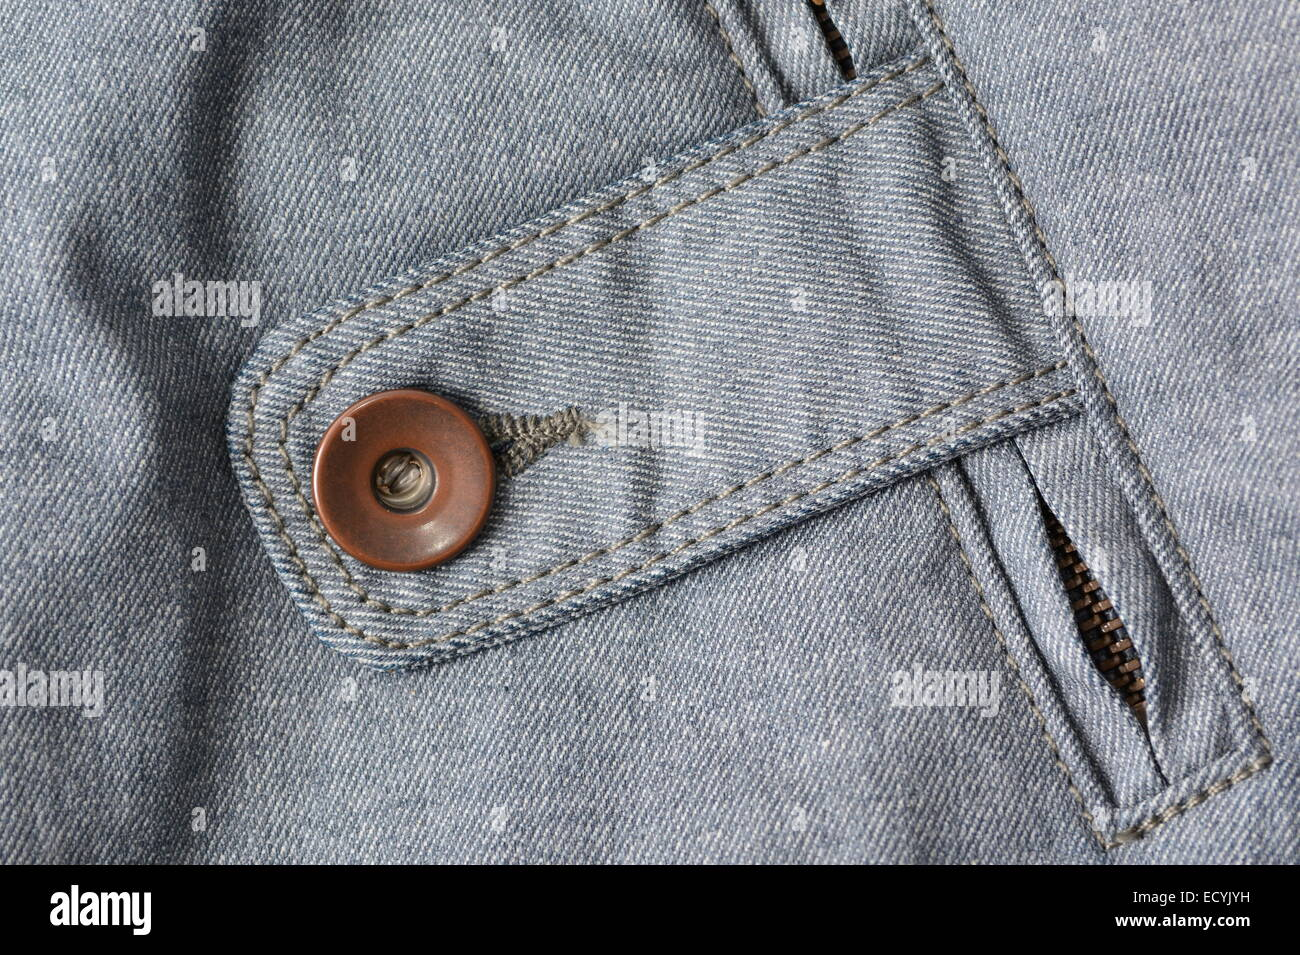 Detail of denim fabric, background - Stock Image